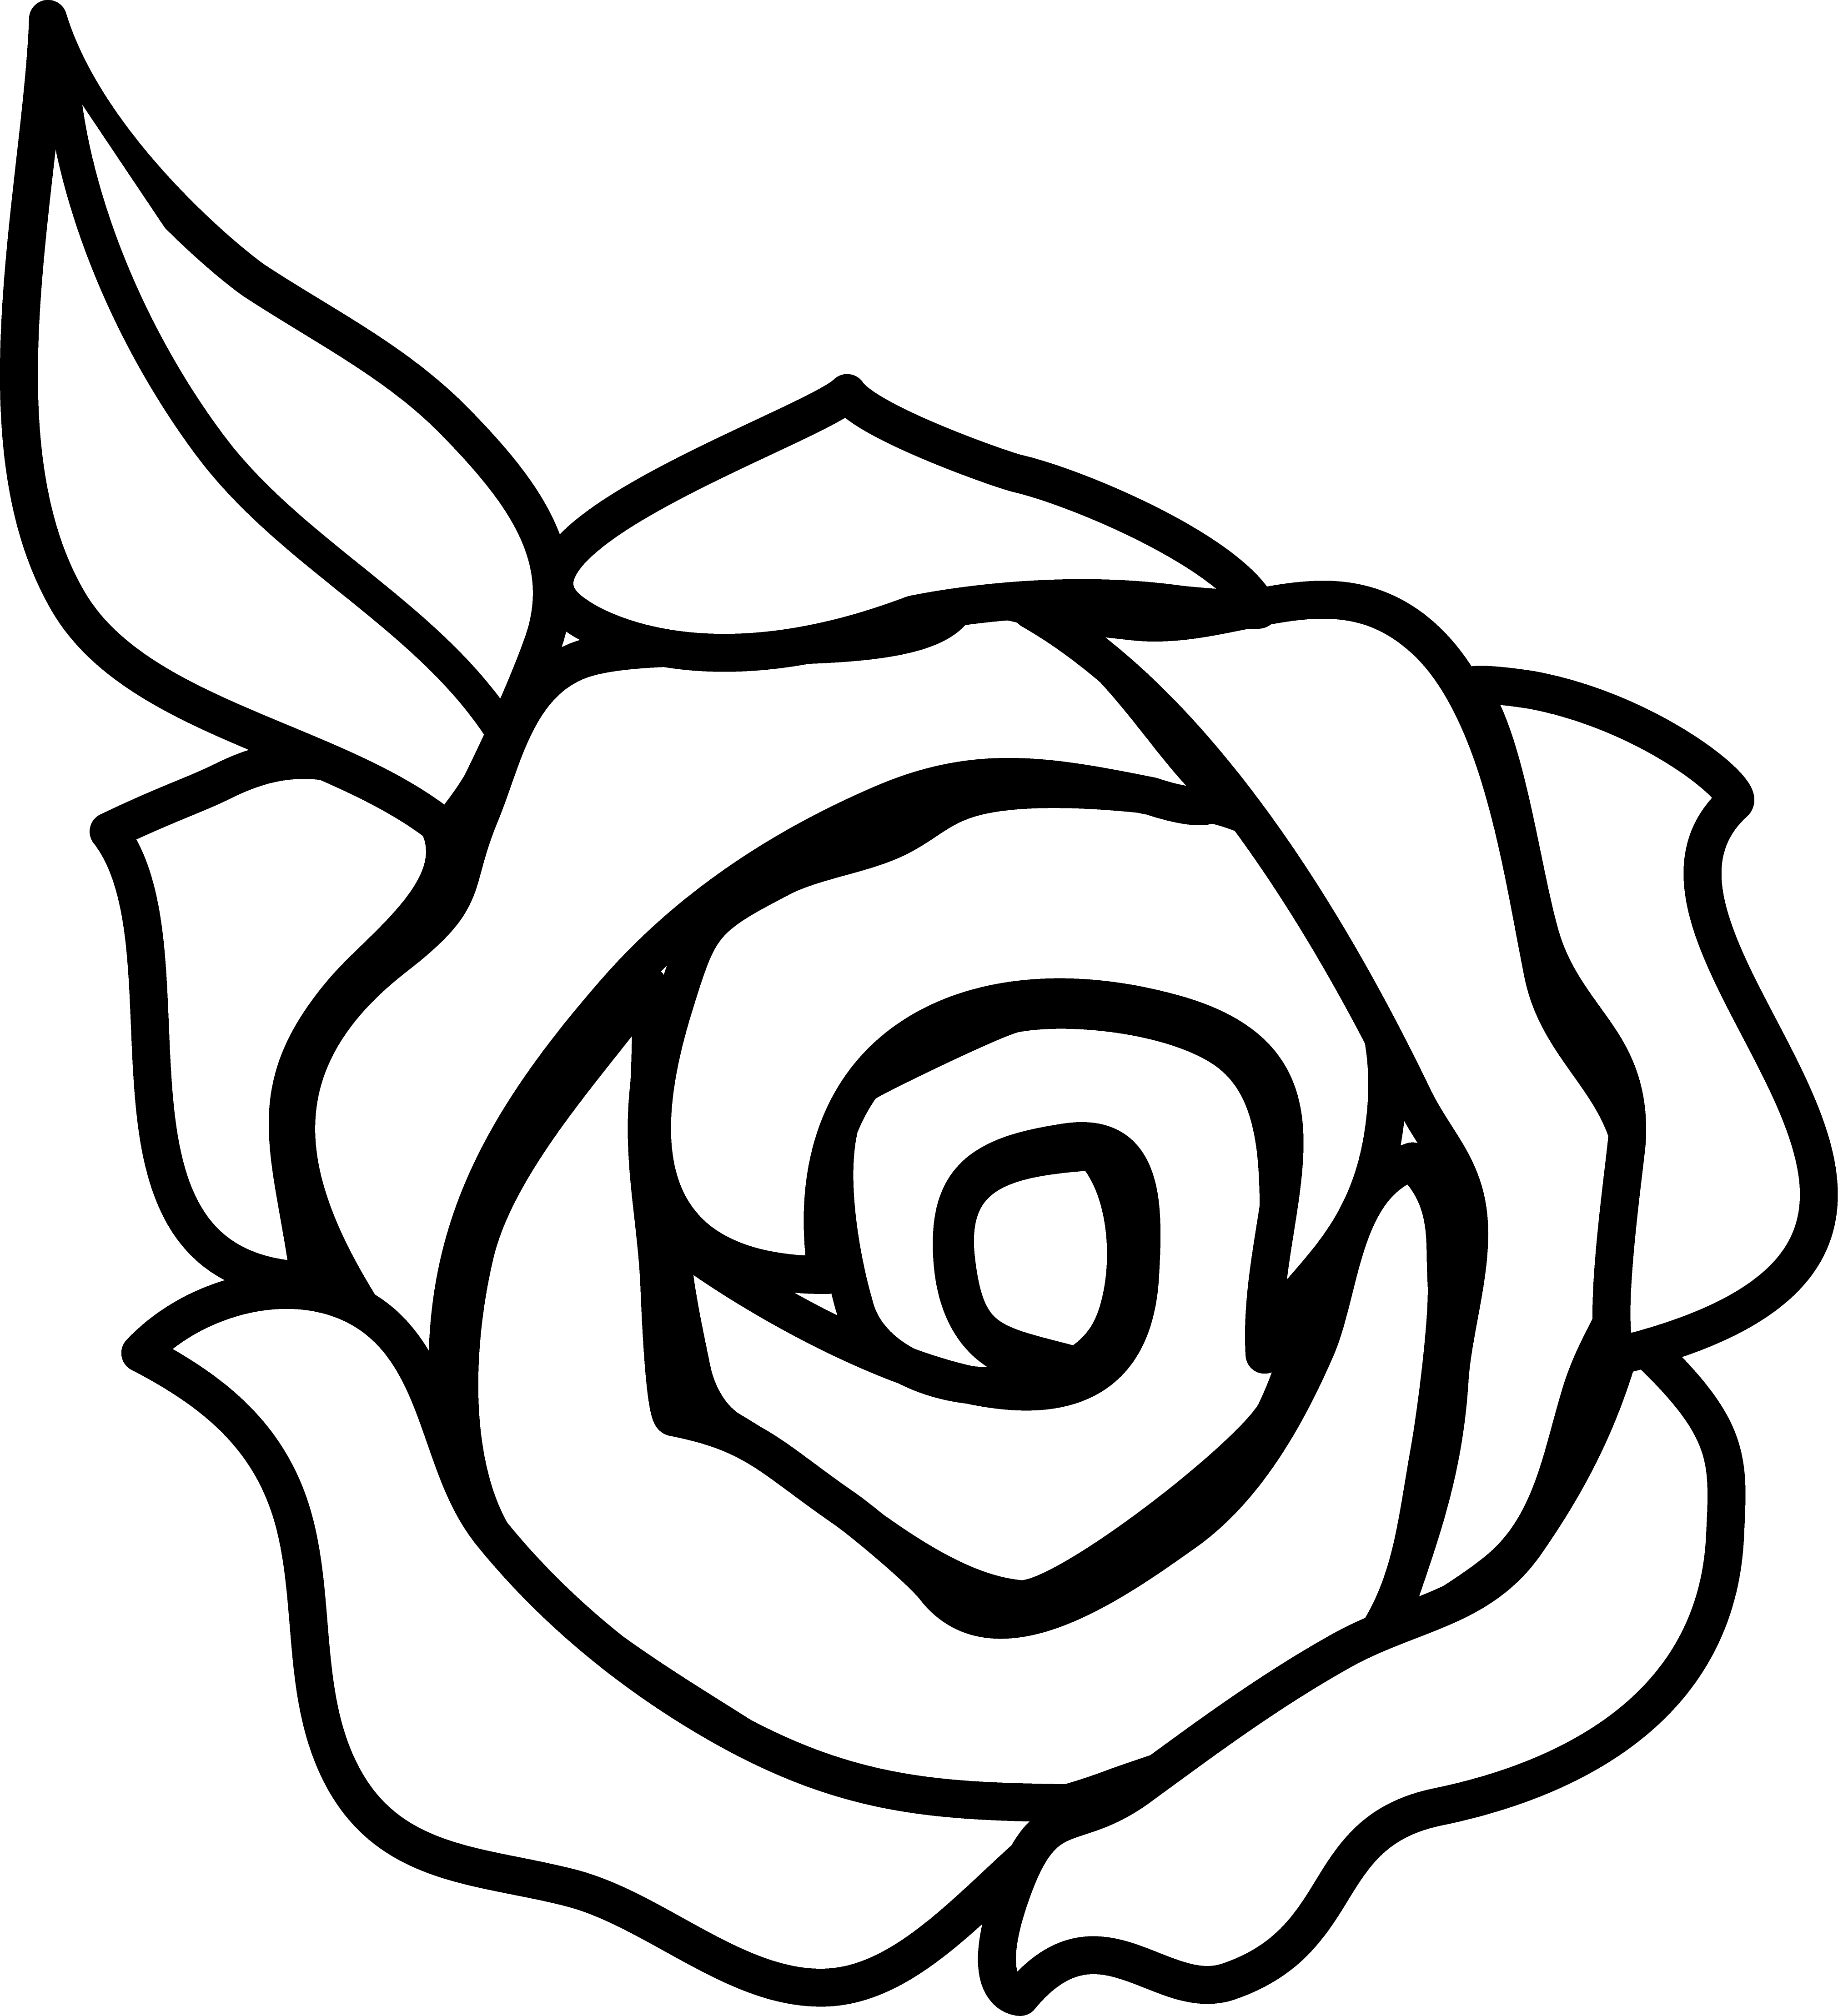 rose clipart black and white outline